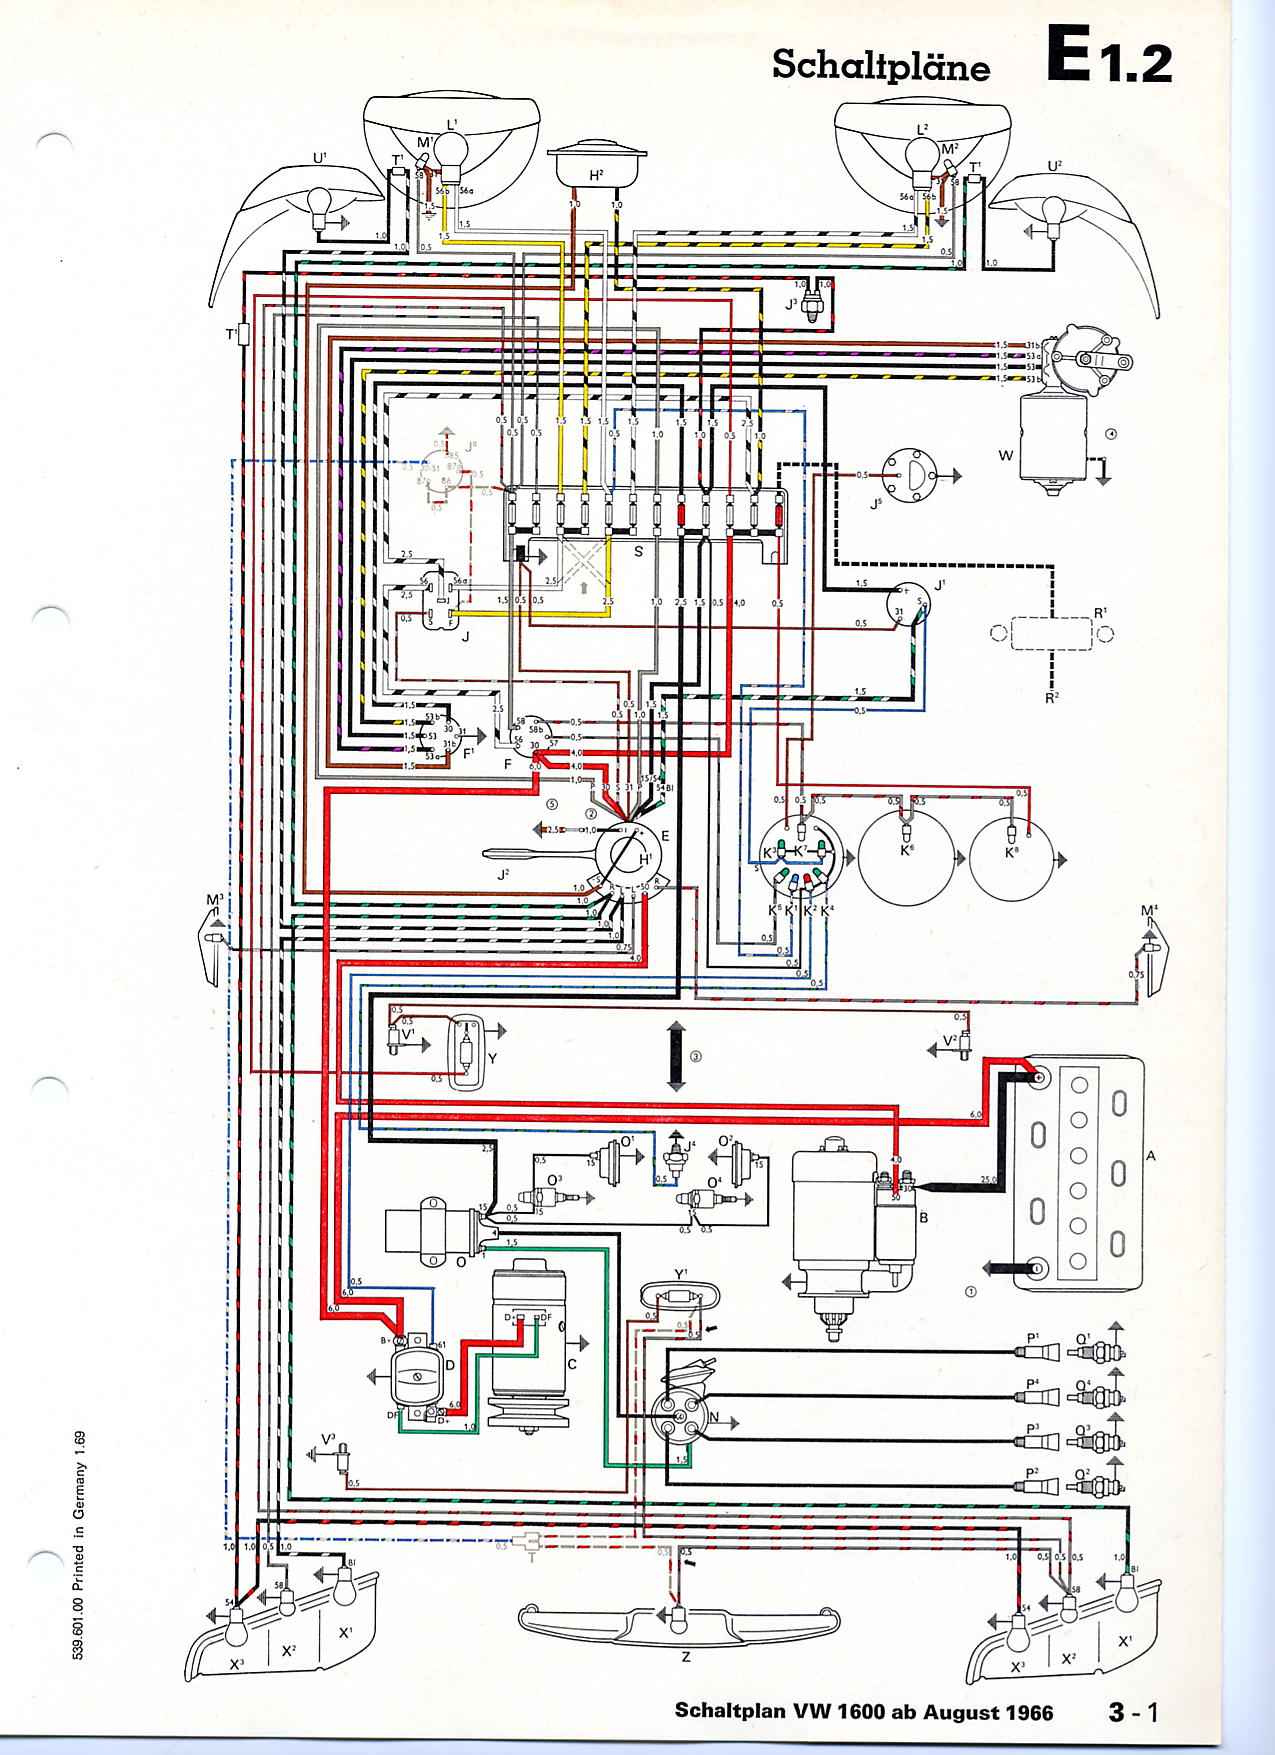 Datsun 710 Wiring Diagram Free Download Diagrams 1975 280z And 67has Electric Fuel Pump Corvette Duesenberg Blue 510 On At